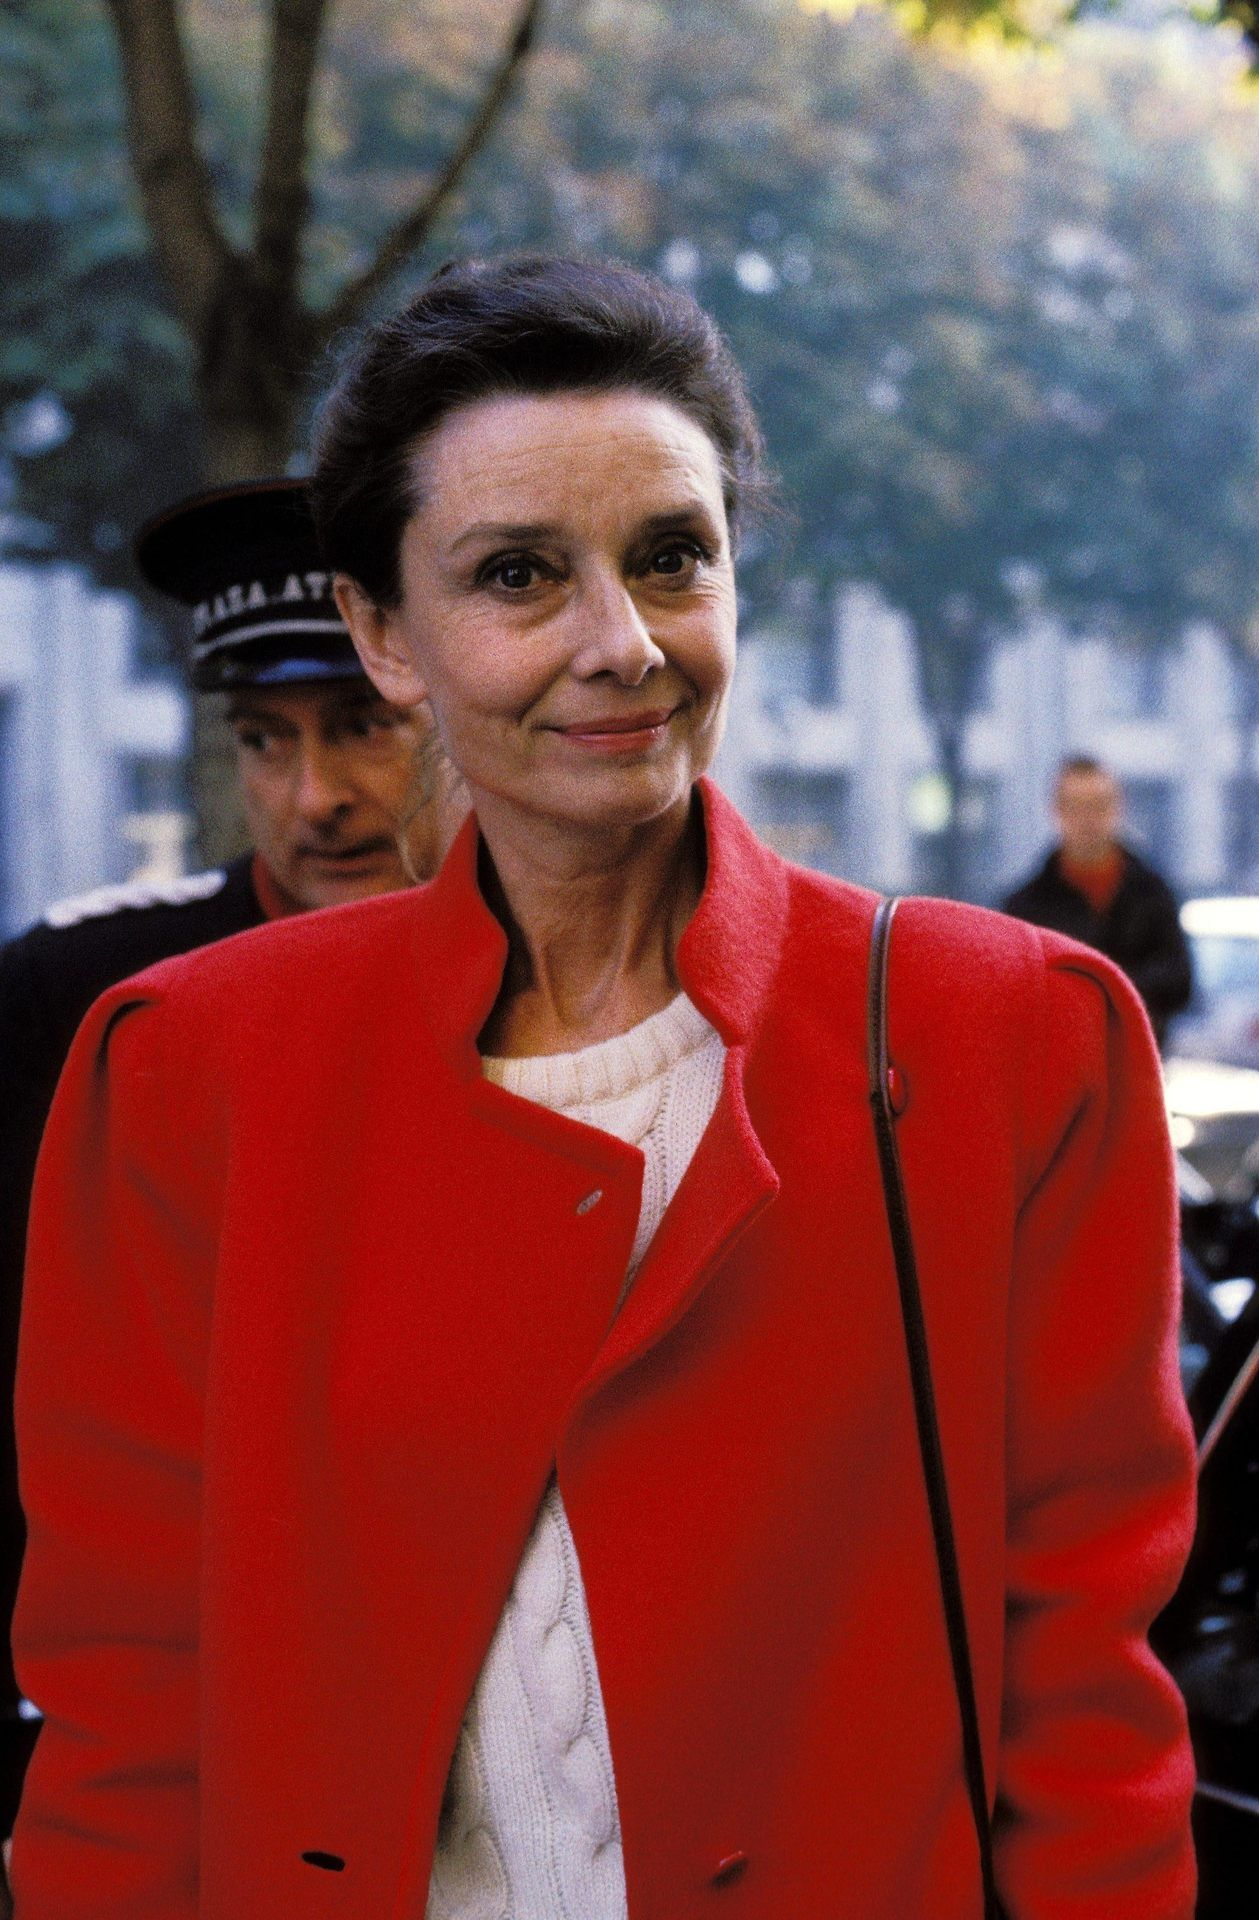 Audrey Hepburn photographed by Othoniel in Paris (France), on October 22, 1985.